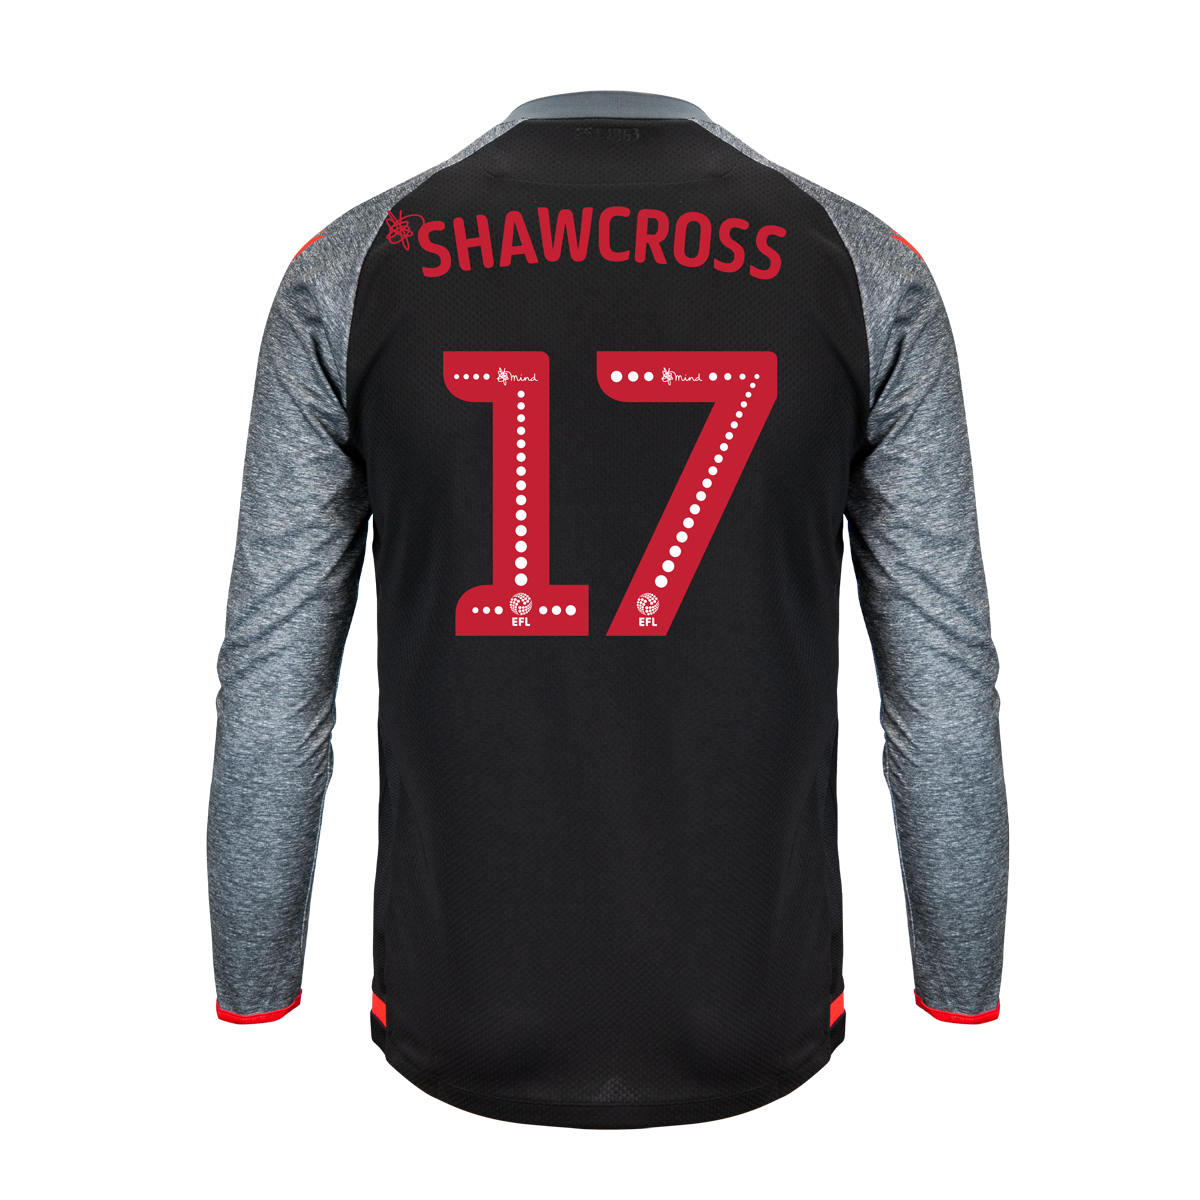 2019/20 Adult Away LS Shirt - Shawcross